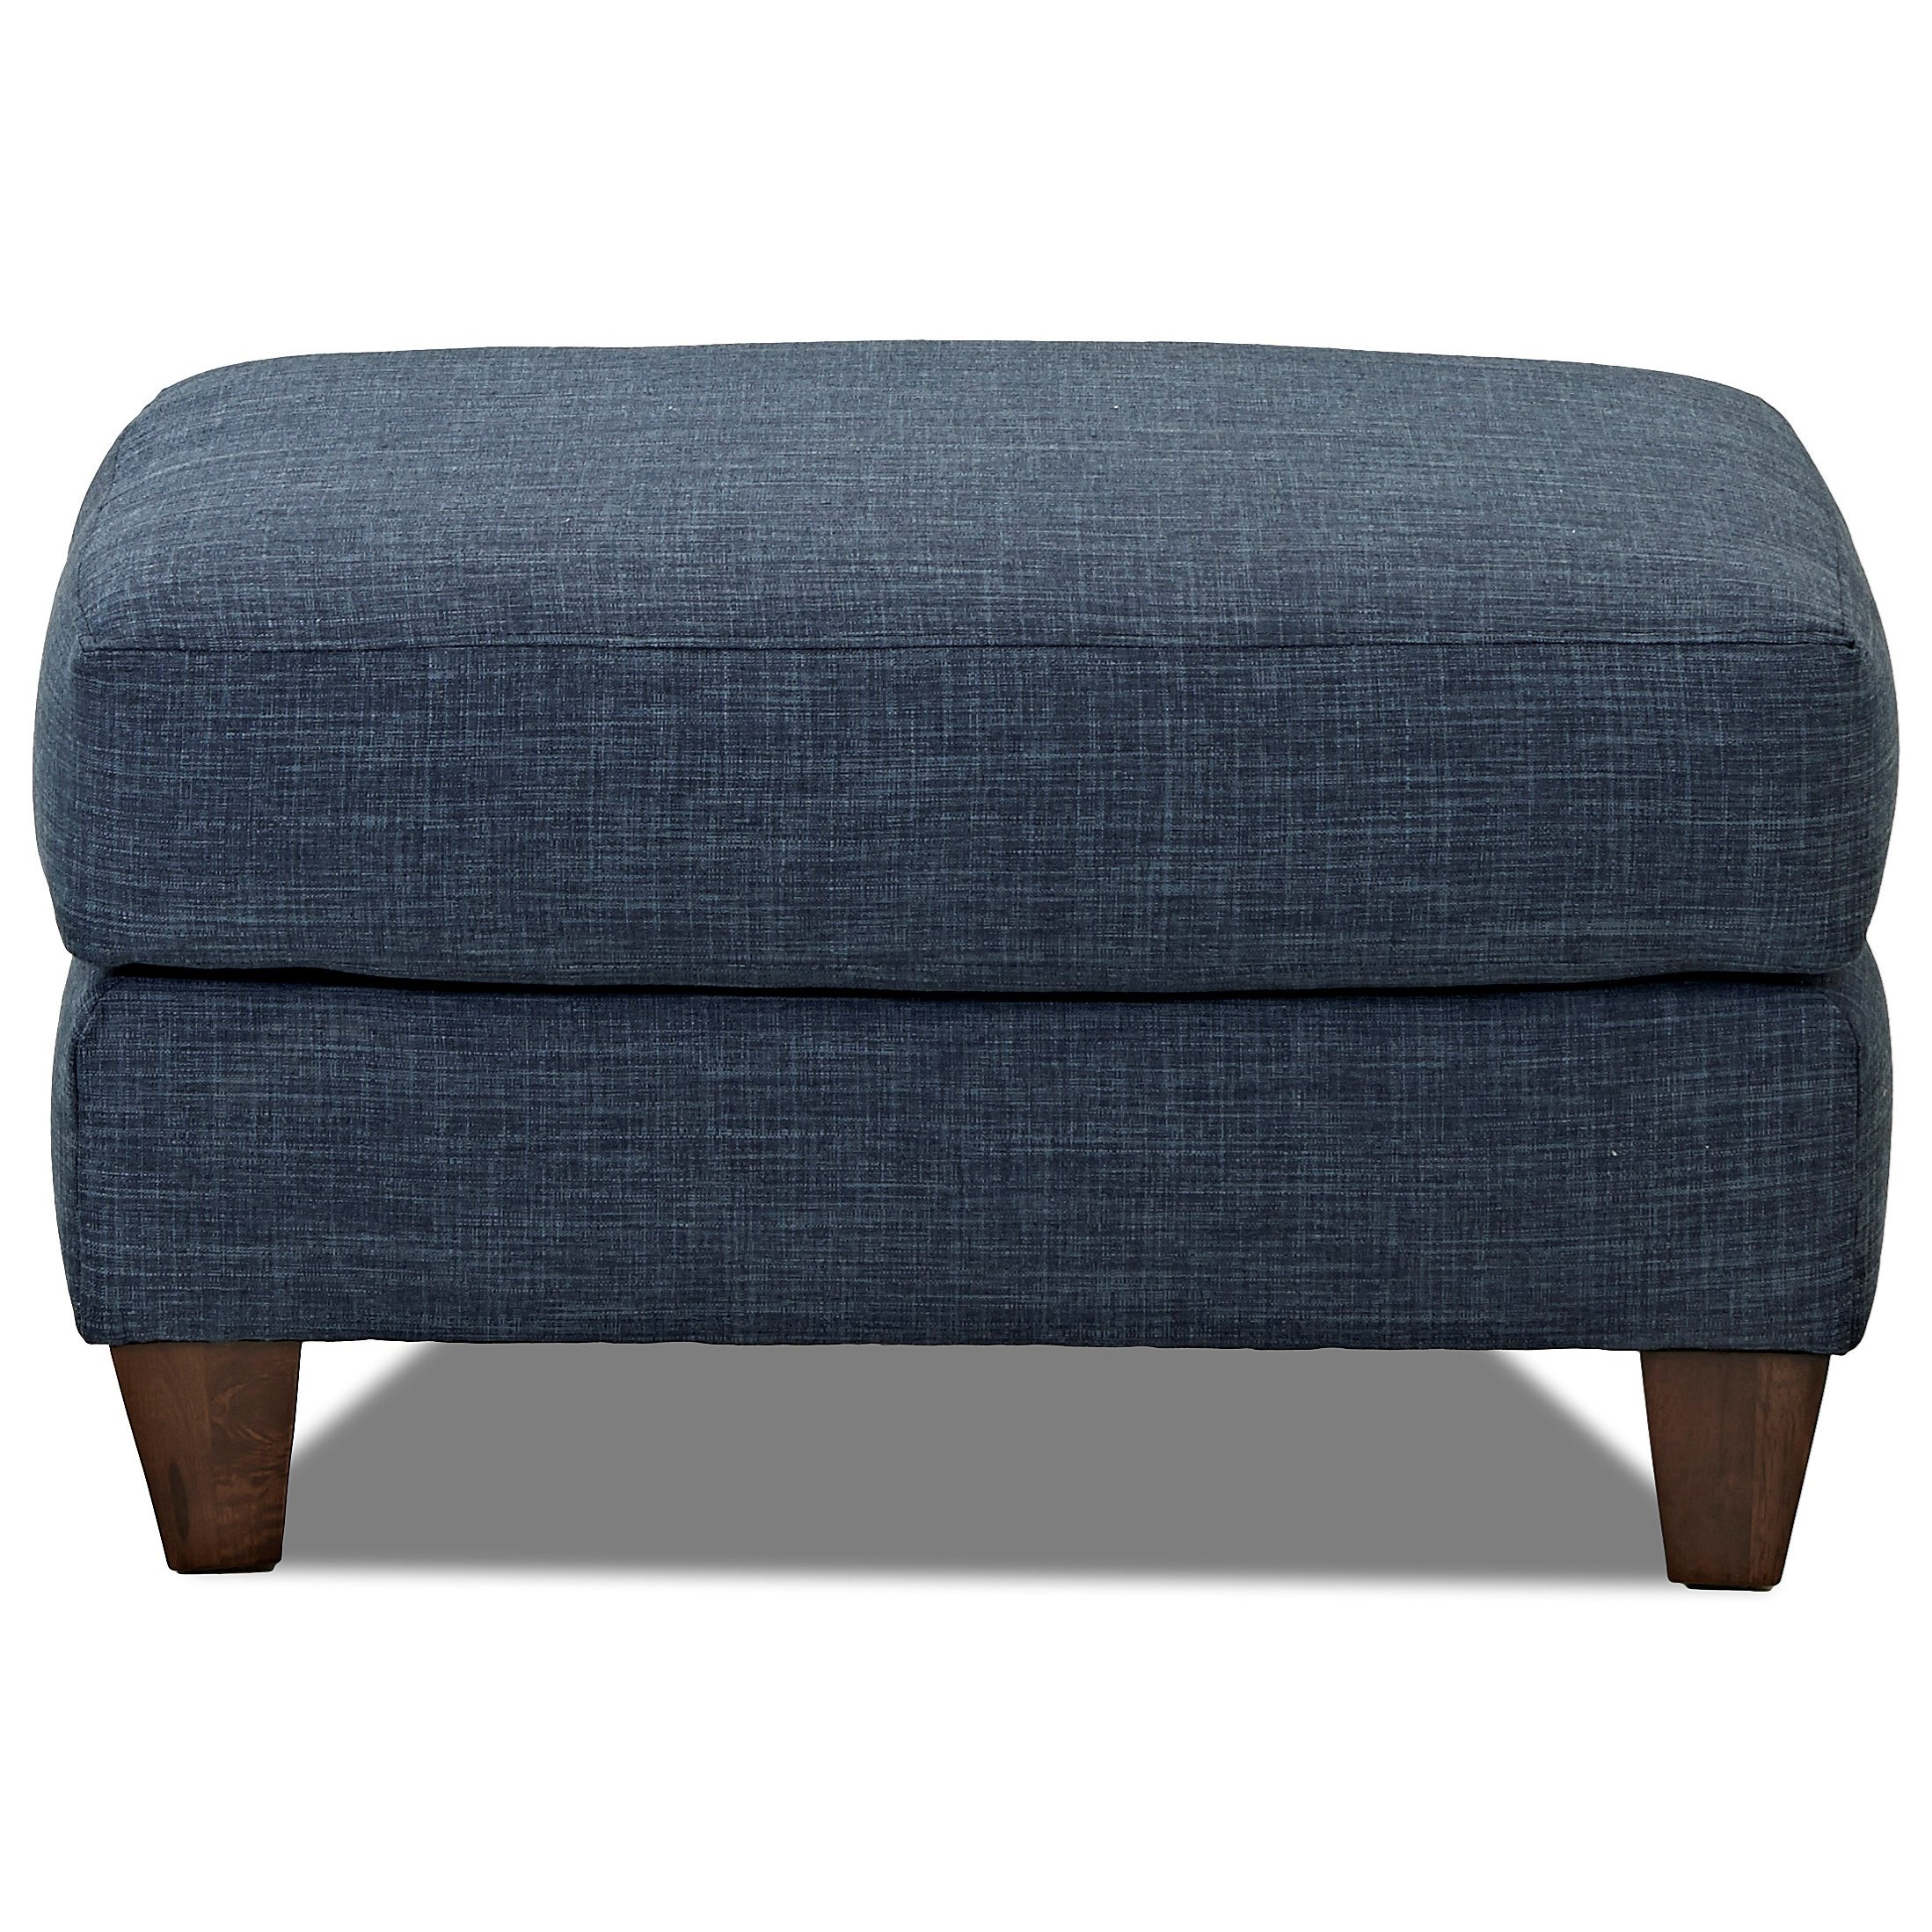 Bosco Ottoman by Klaussner at Northeast Factory Direct